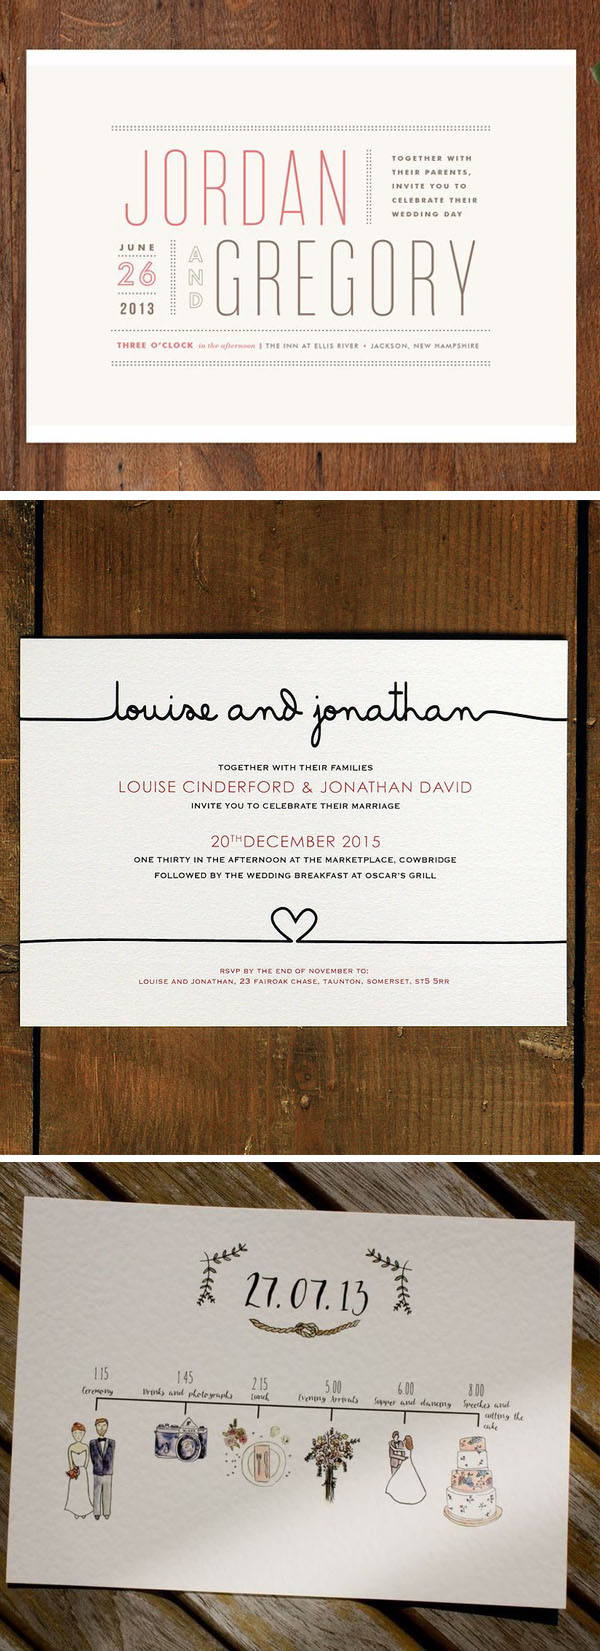 20 popular wedding invitation wording diy templates ideas creative and fancy wedding invitation wording and template ideas filmwisefo Images